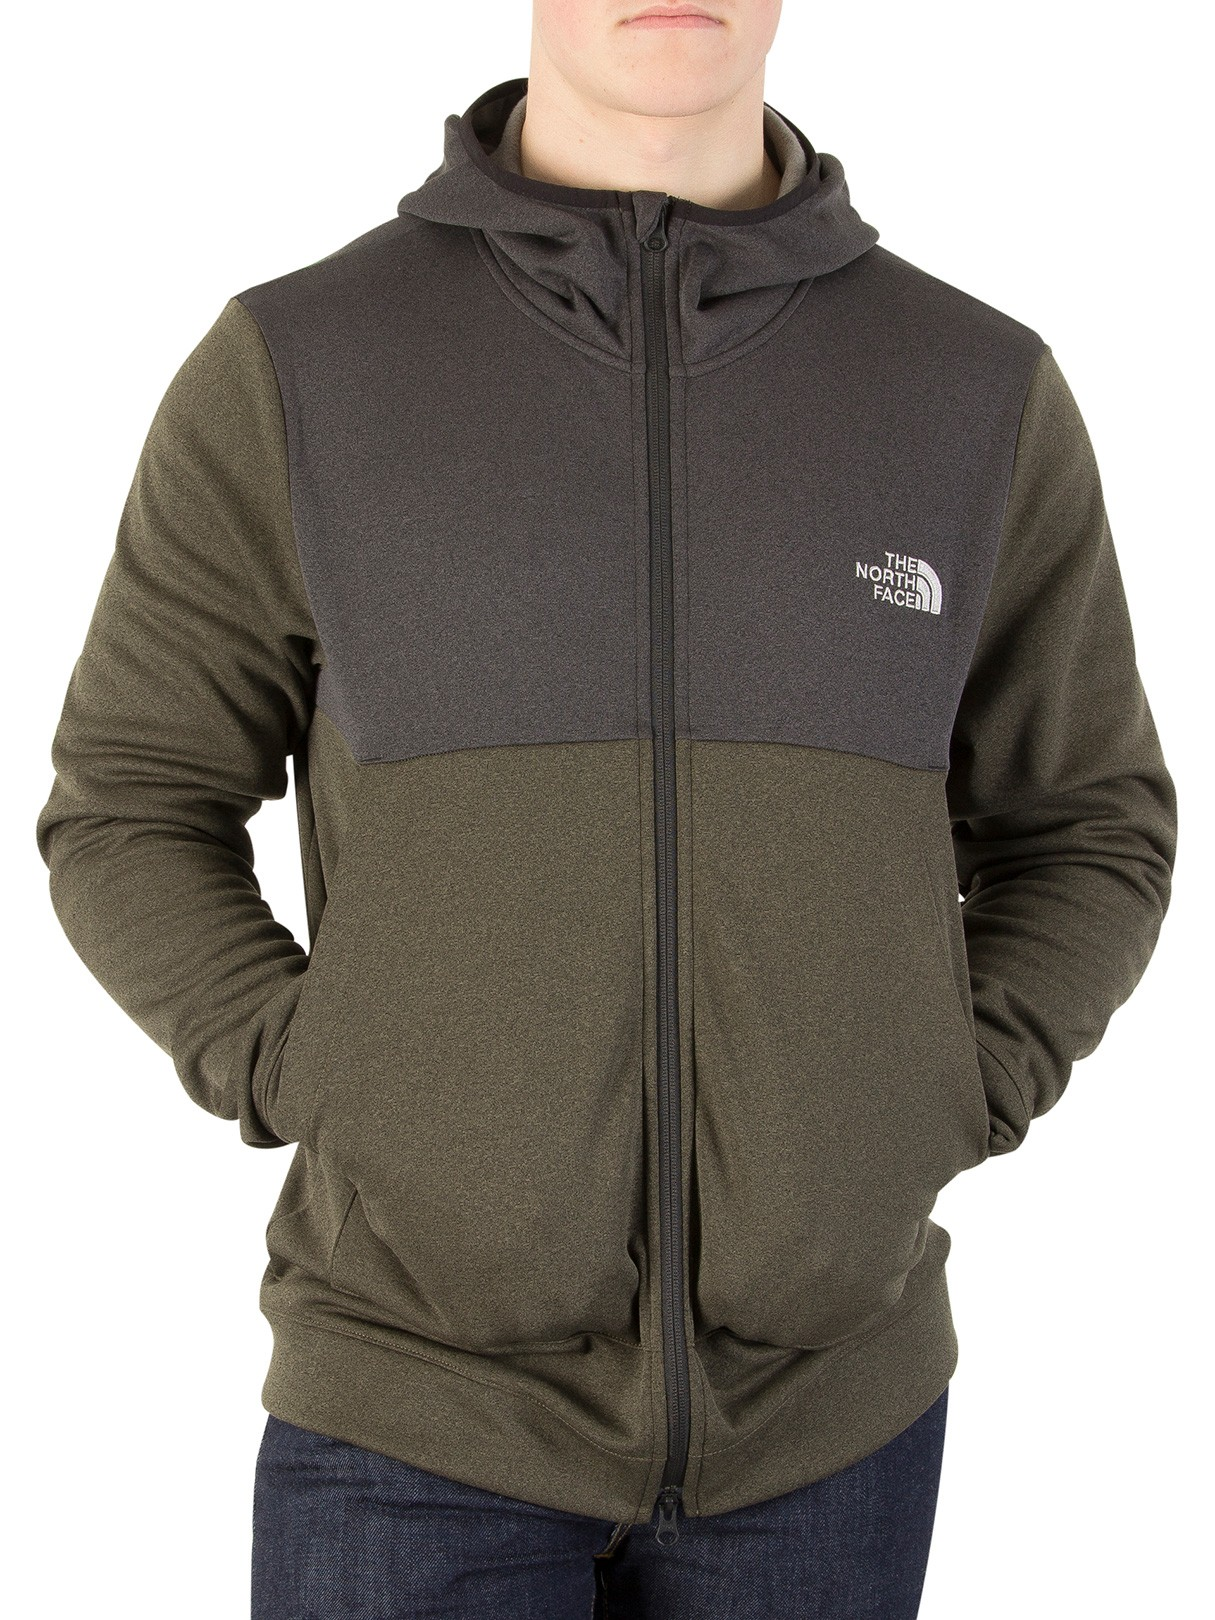 Men's The North Face New Taupe Green Tech Zip Hoodie